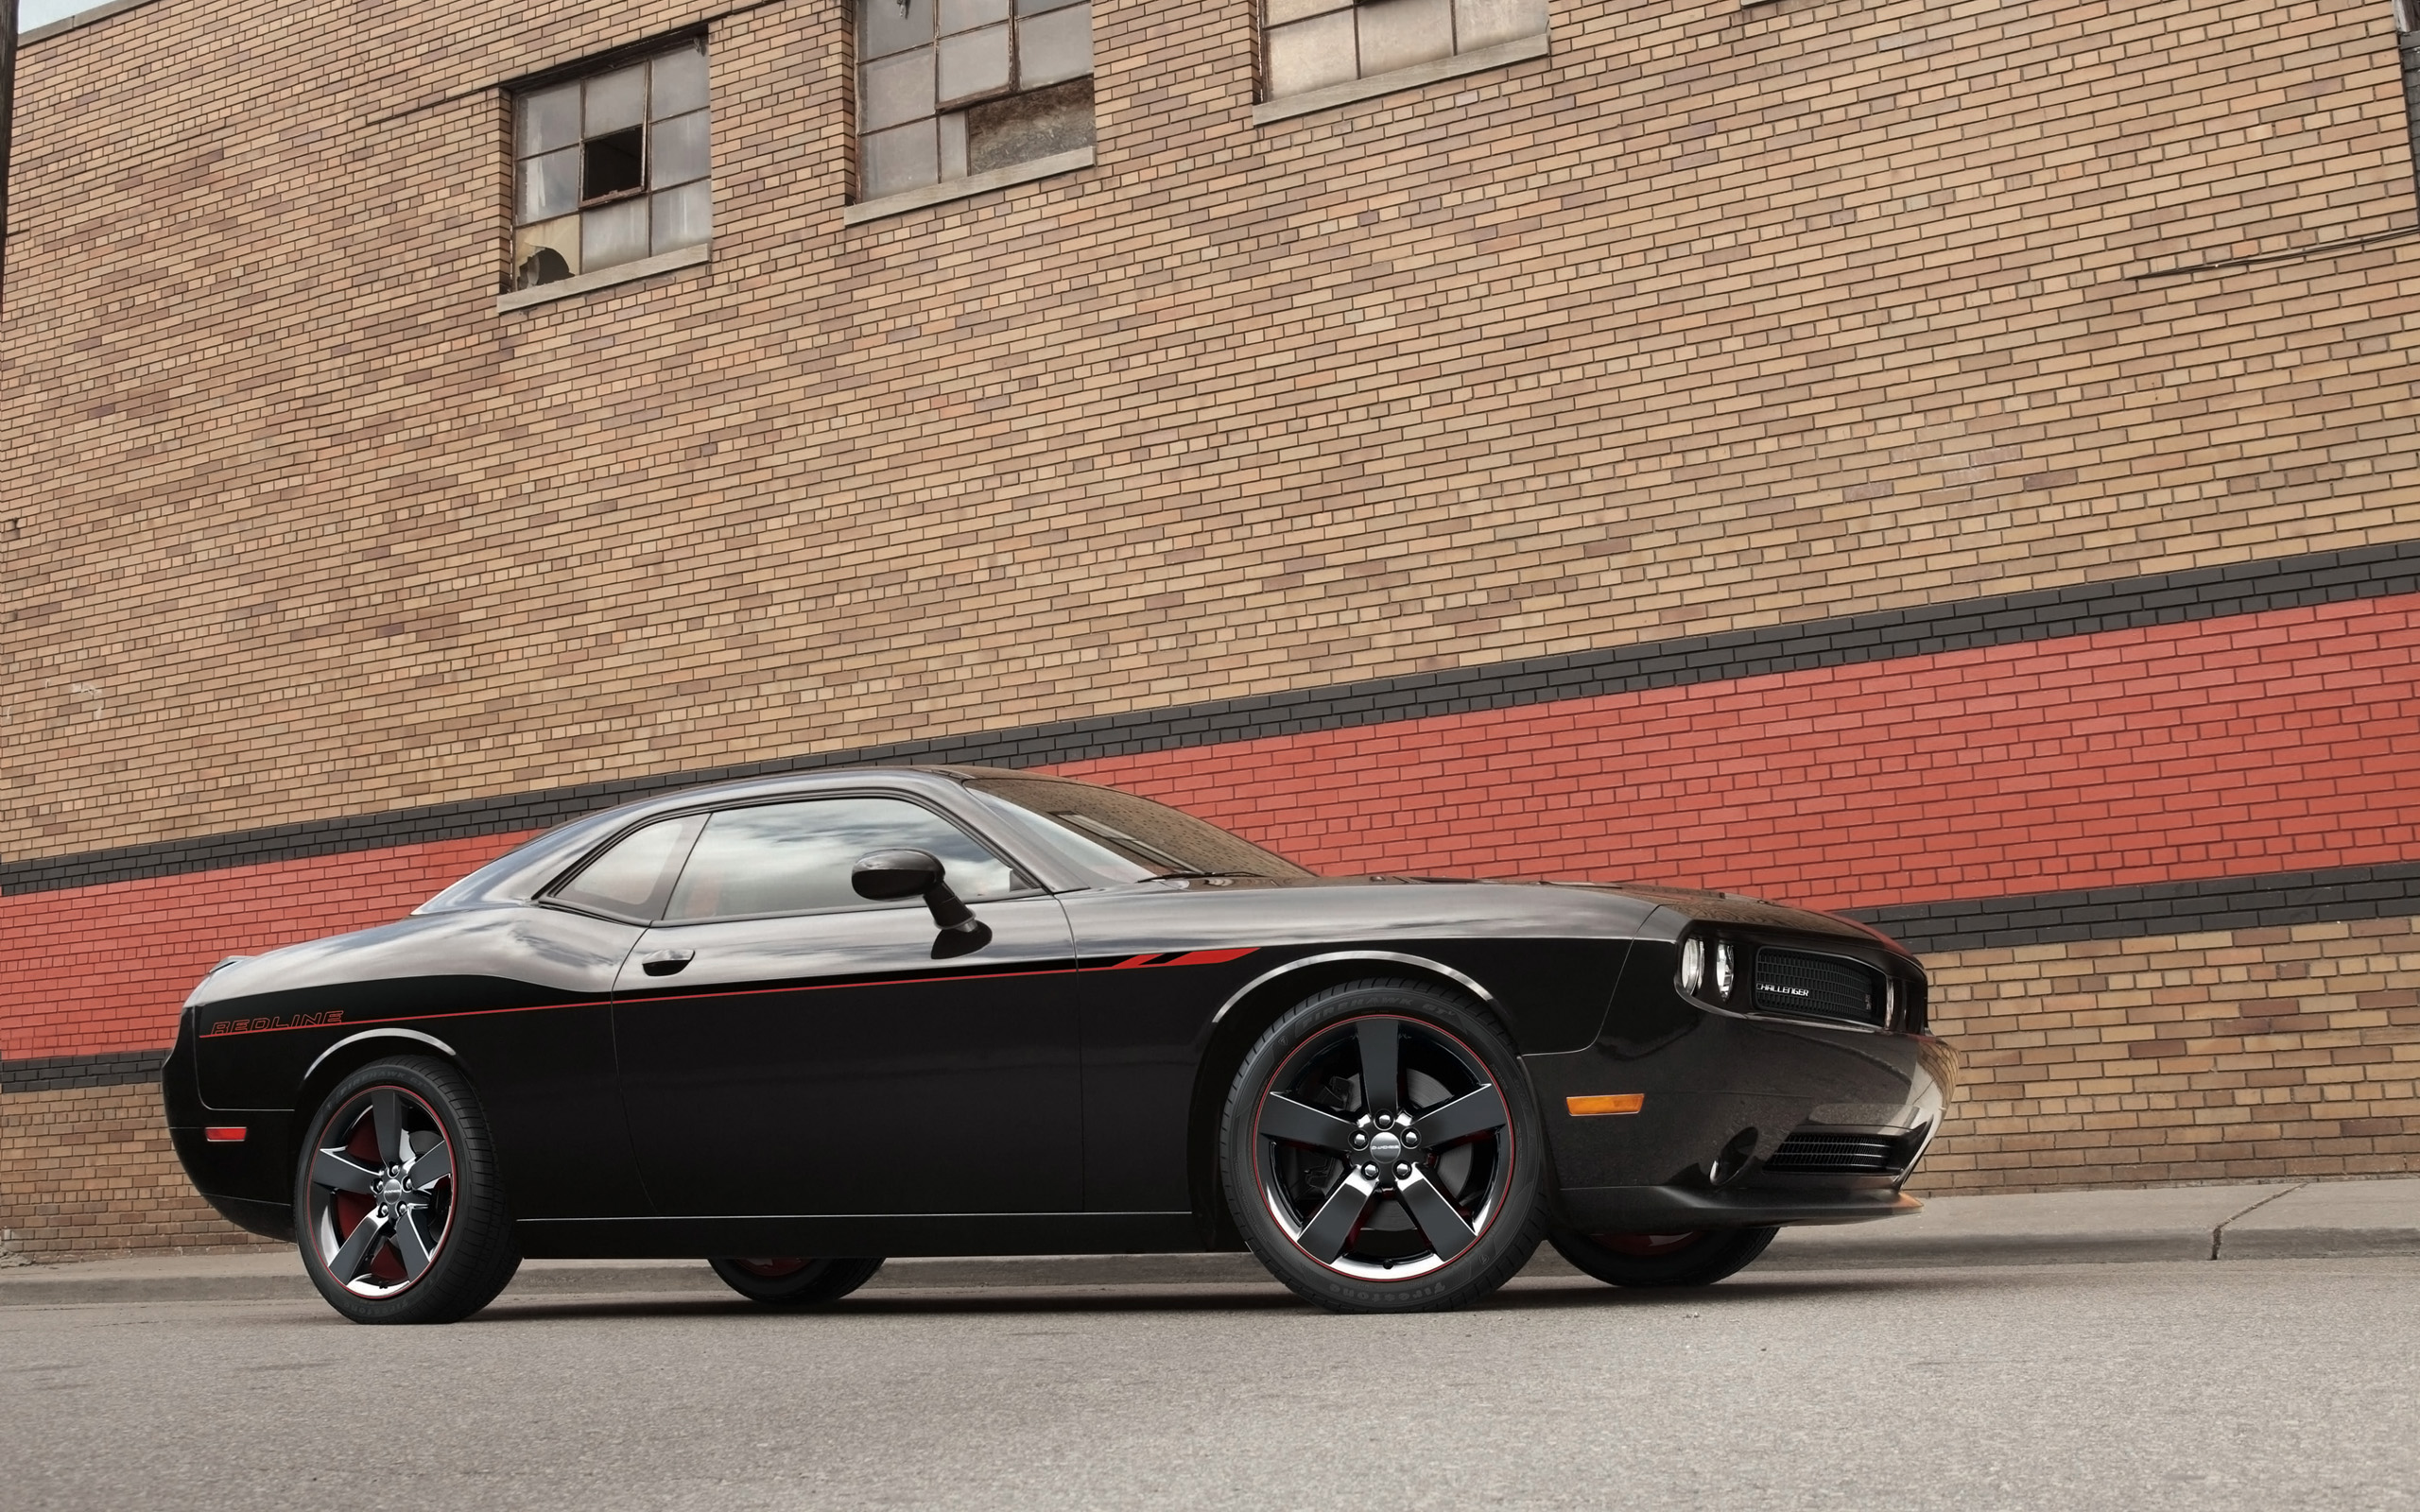 2560x1600 - Dodge Challenger Rallye Wallpapers 1